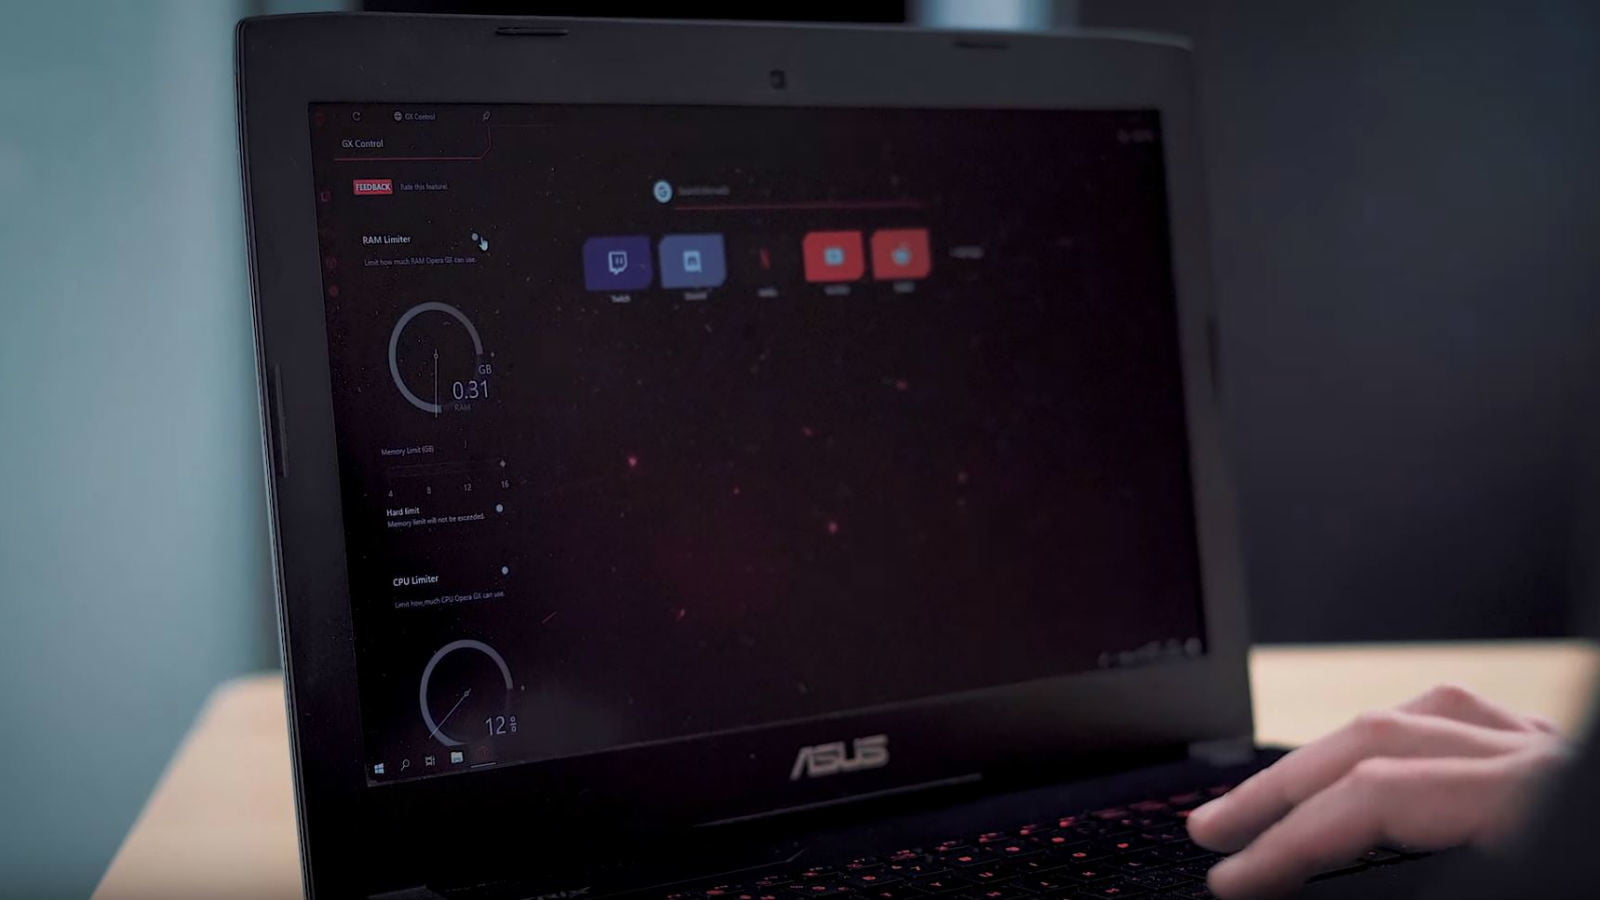 Opera GX Is a Browser for Gamers, But the Actual Gaming Is Still to